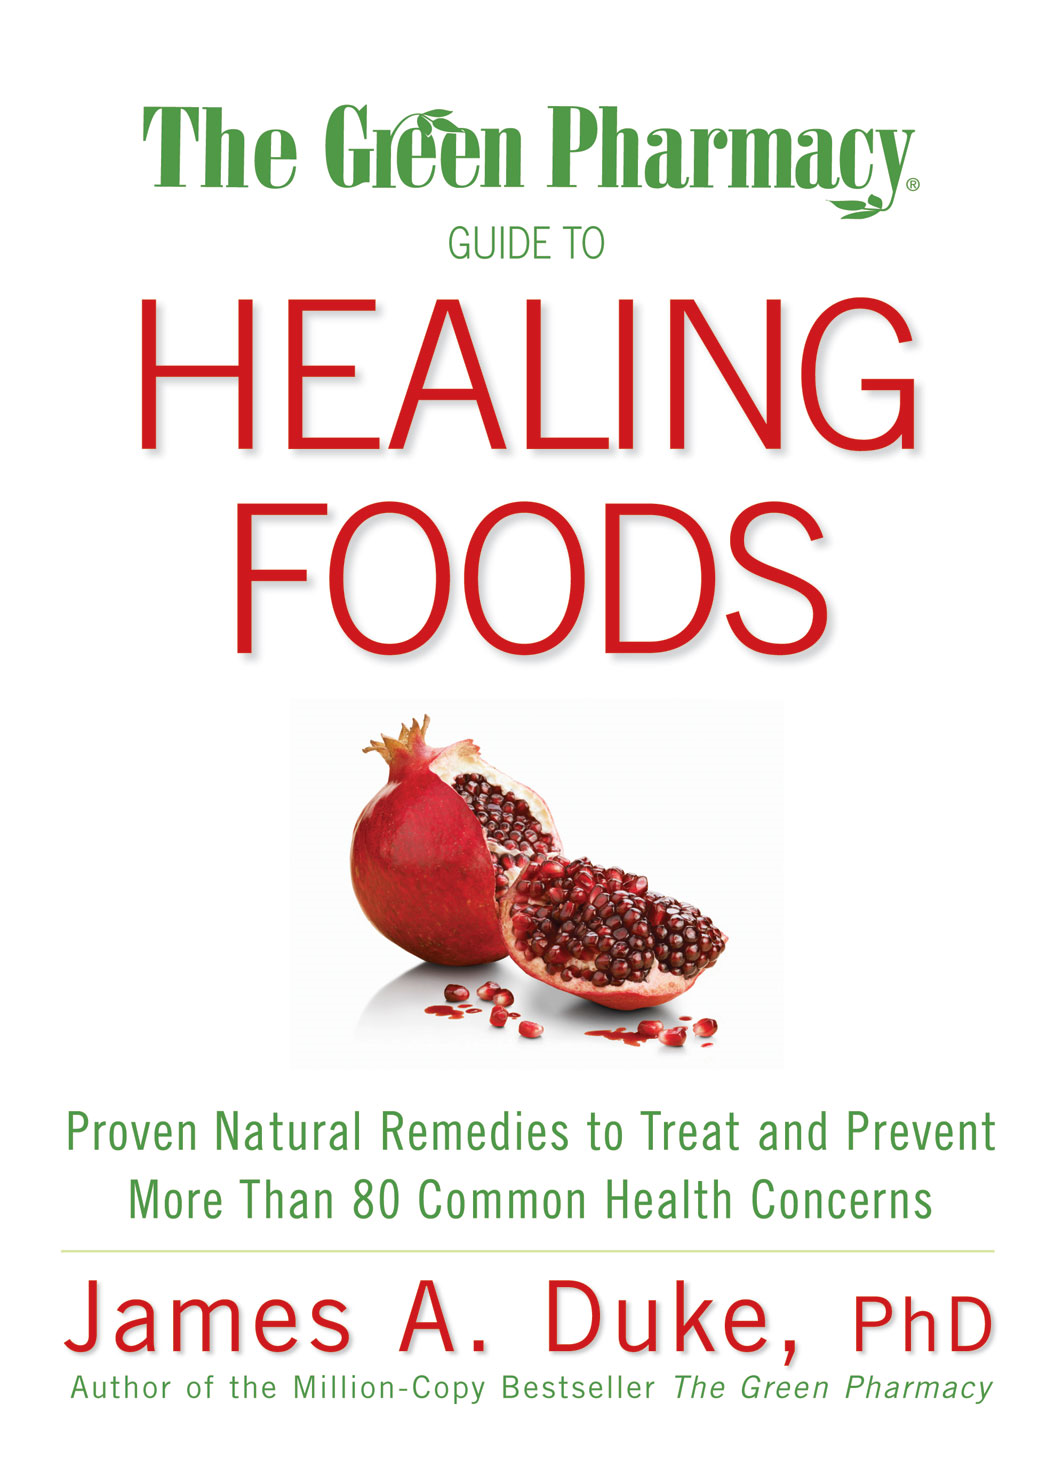 The Green Pharmacy Guide to Healing Foods: Proven Natural Remedies to Treat and Prevent More Than 80 Common Health Concerns By: James A. Duke